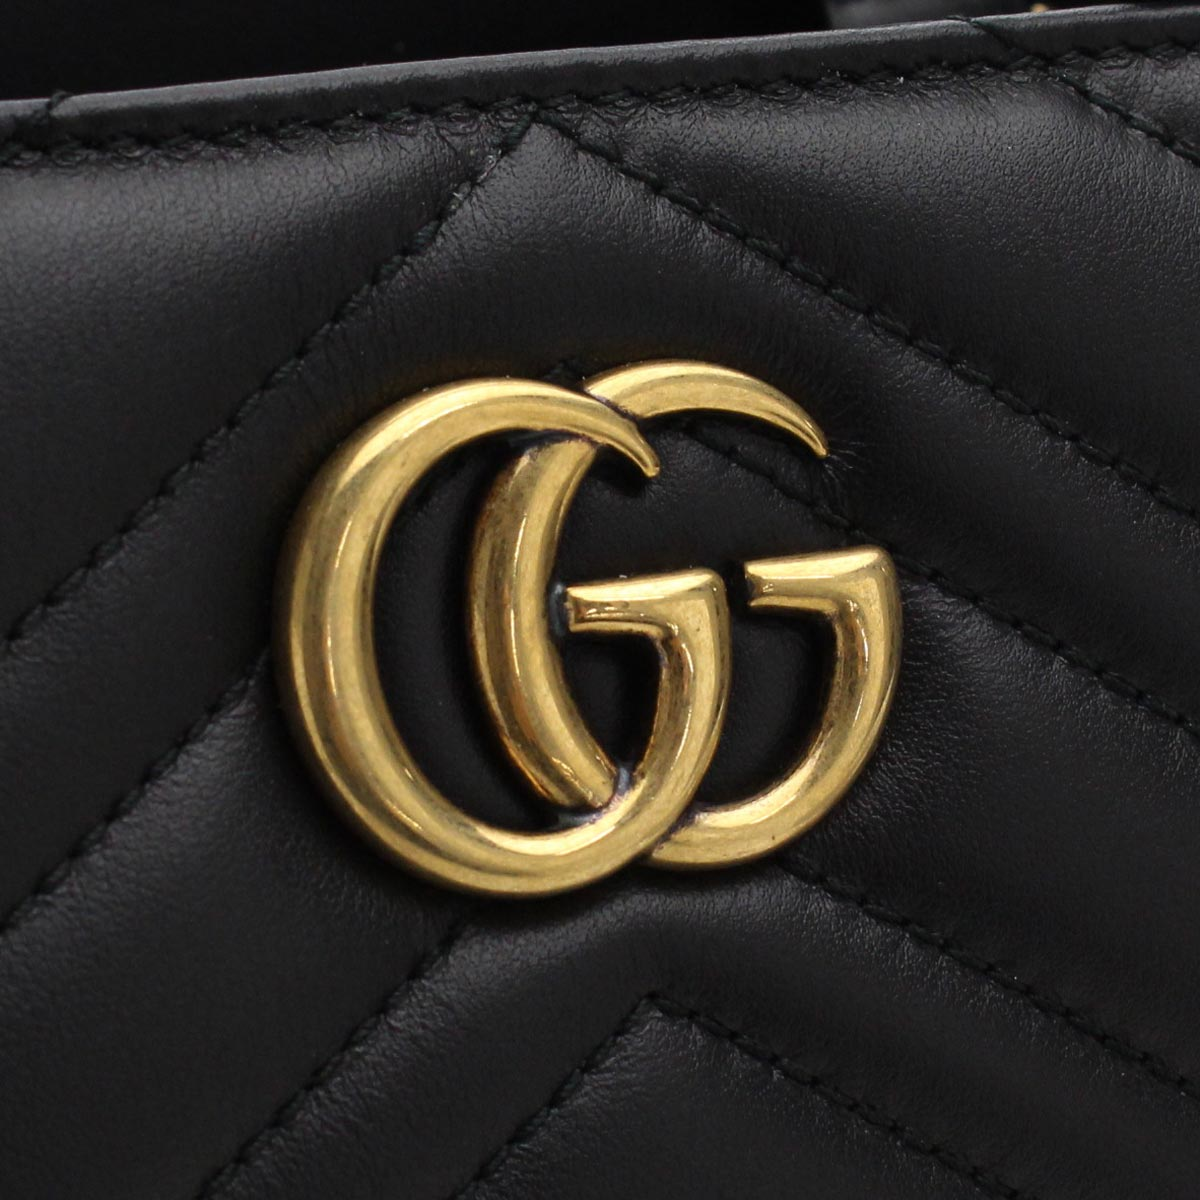 48f97814a5b Bighit The total brand wholesale  Gucci (GUCCI) GG MARMONT 2way ...